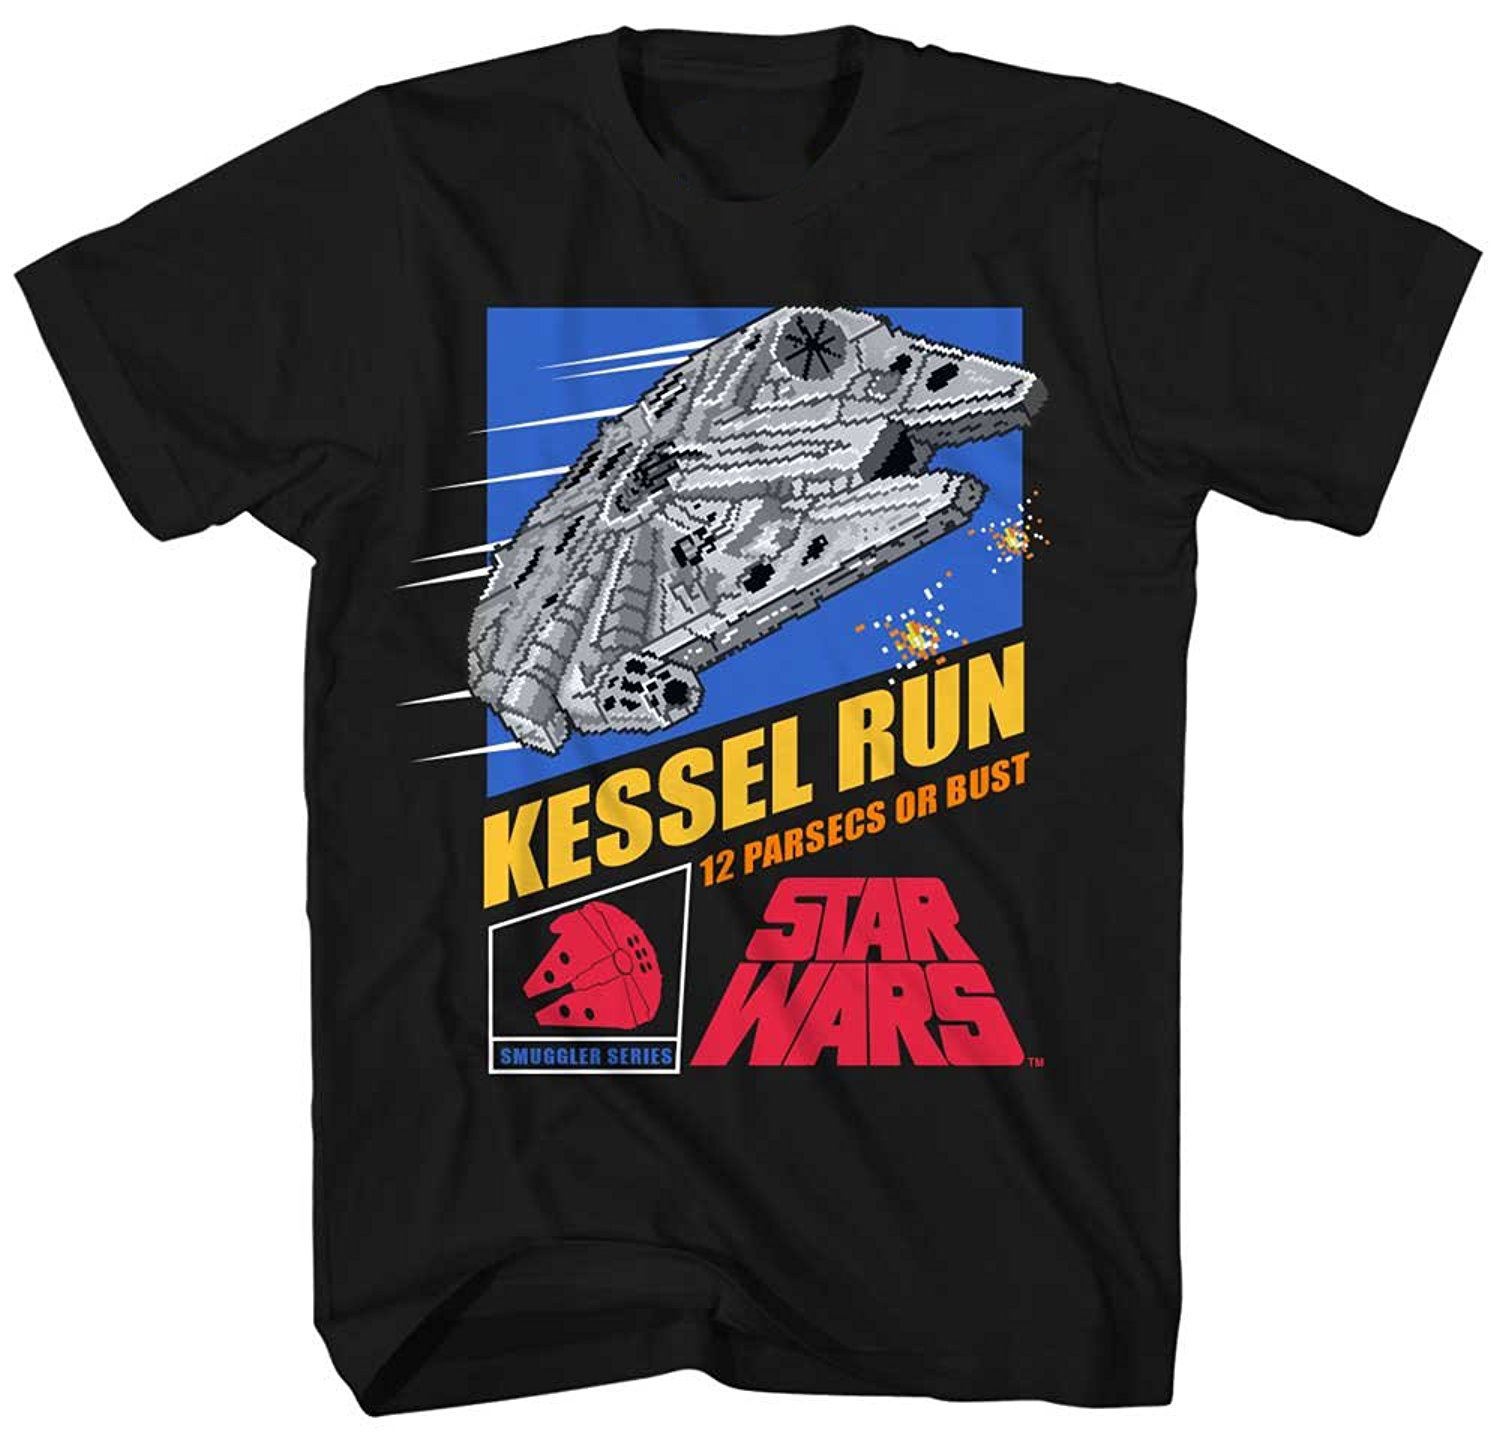 Star Wars Millennium Falcon Han Solo Chewbacca Chewie Kessel Run Video Game Funny Humor Pun Mens Adult Graphic Tee T-shirt